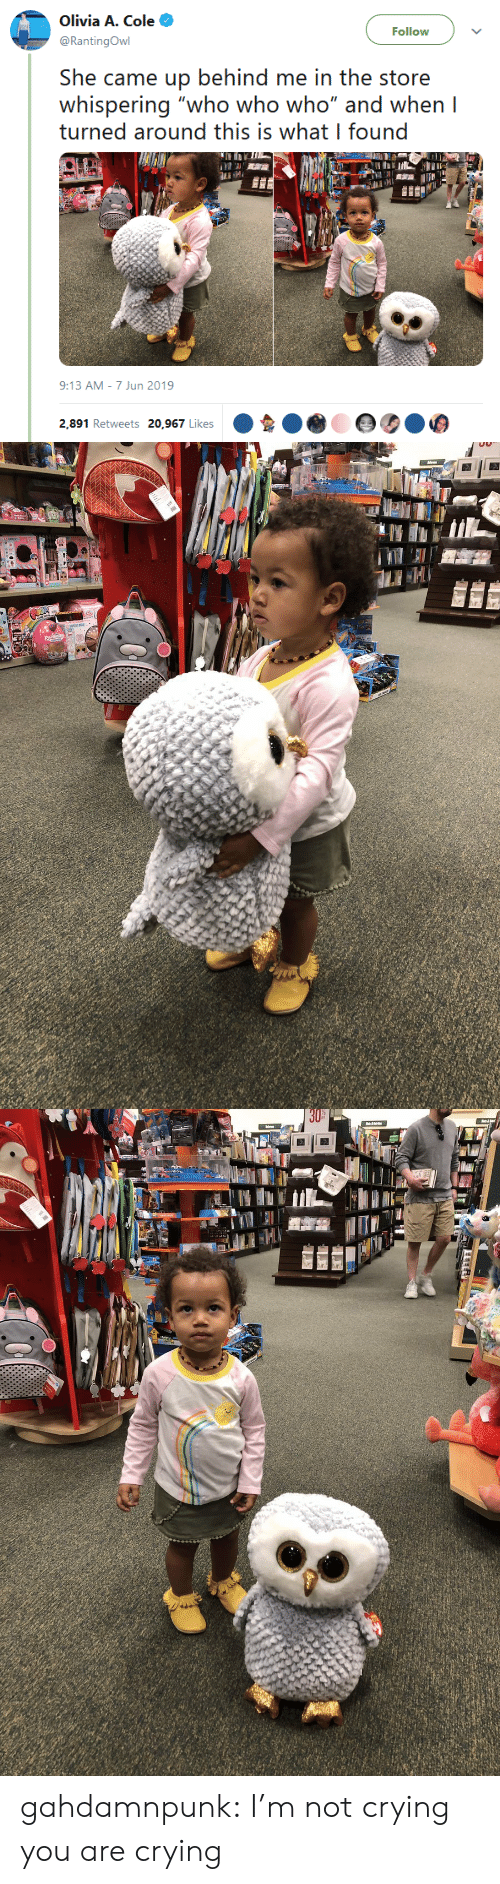 """Whispering: Olivia A. Cole  Follow  @RantingOwl  She came up behind me in the store  whispering """"who who who"""" and when I  turned around this is what I found  9:13 AM 7 Jun 2019  2,891 Retweets 20,967 Likes gahdamnpunk: I'm not crying you are crying"""